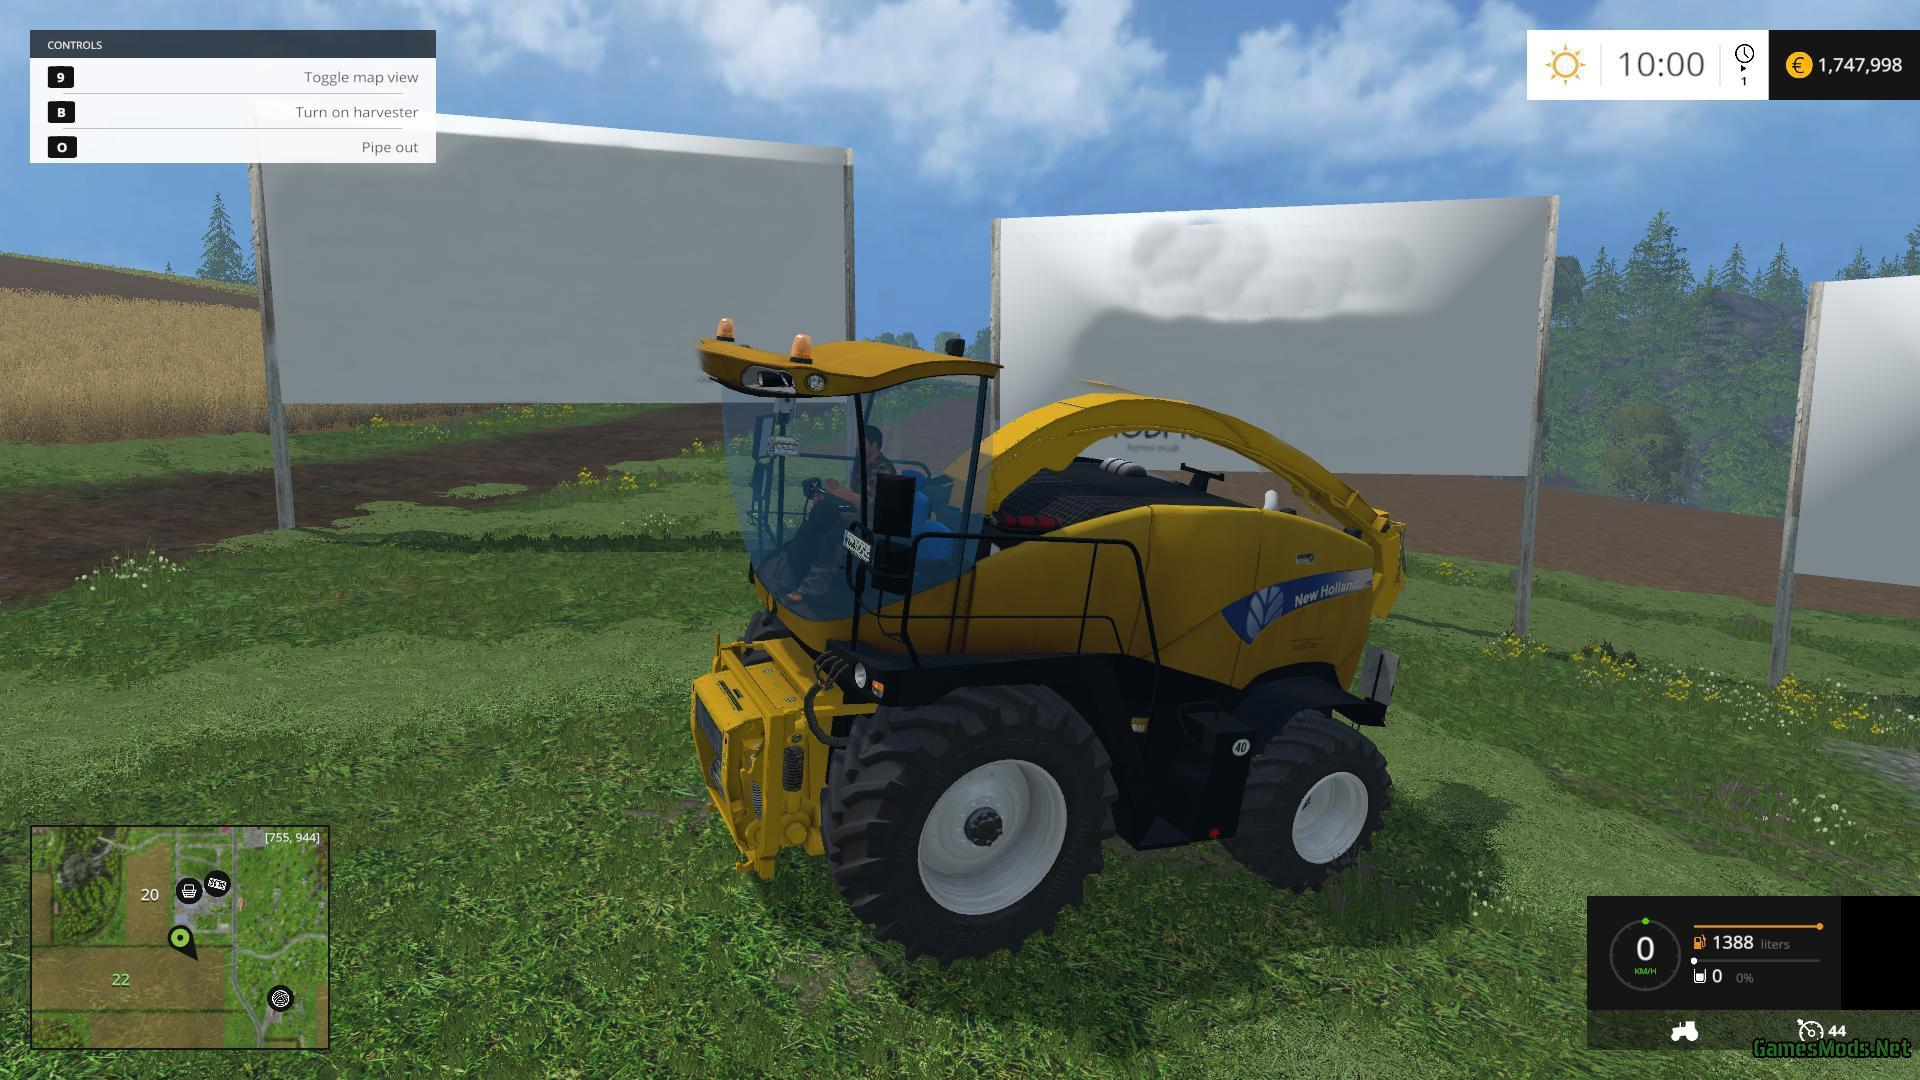 Www Ets Thomas Fr new holland fr 9090 v1.0 » gamesmods - fs19, fs17, ets 2